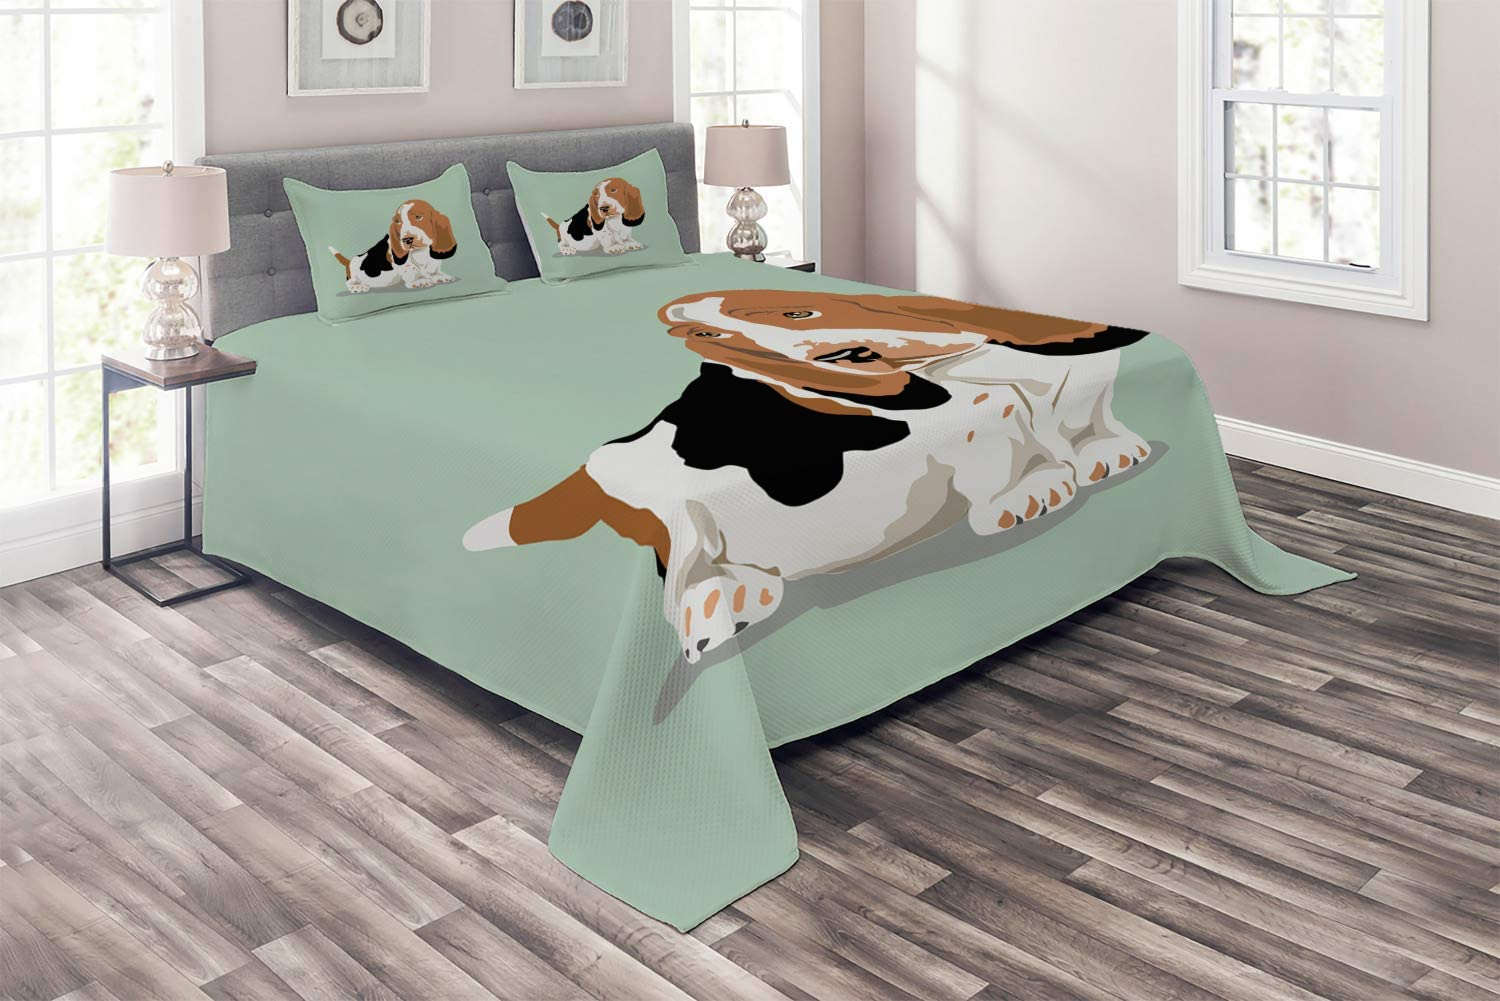 Ambesonne Dog Lover Coverlet Popular products Sacramento Mall Long Eared S on Basset Breed Hound